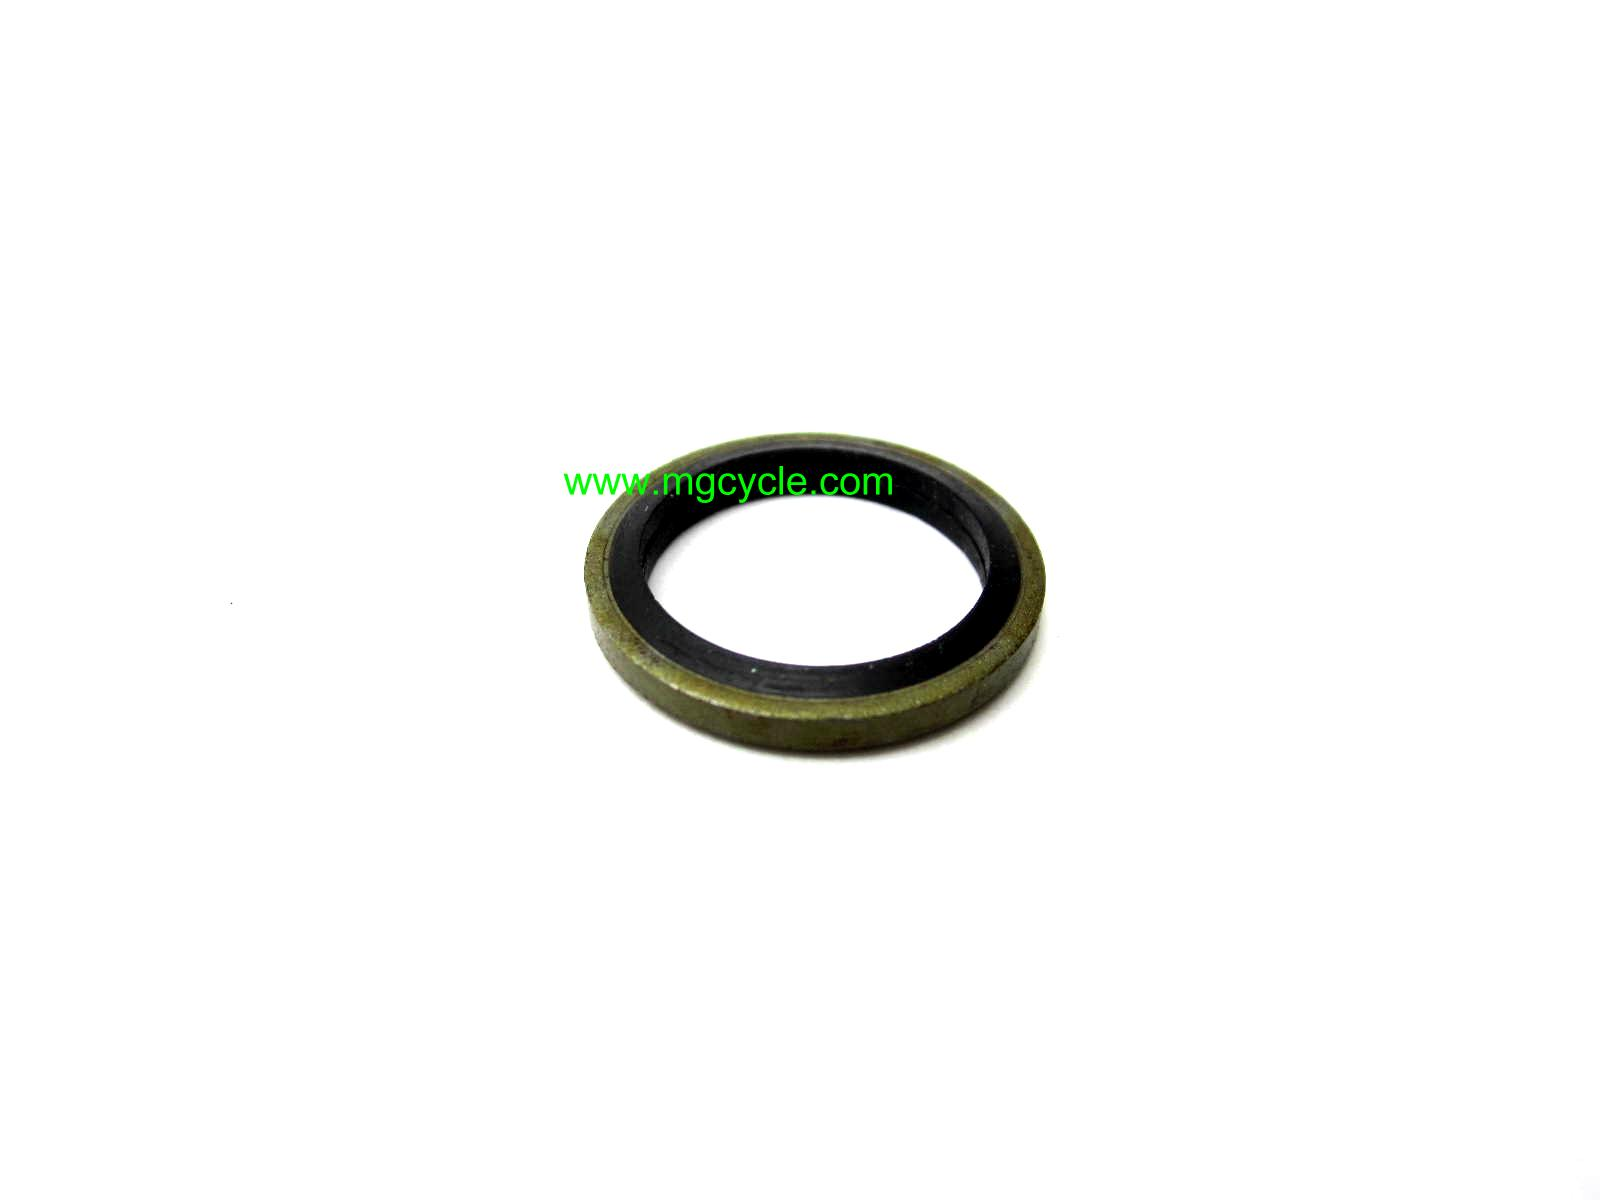 16mm ID sealing washer with rubber seal, many models since 2001